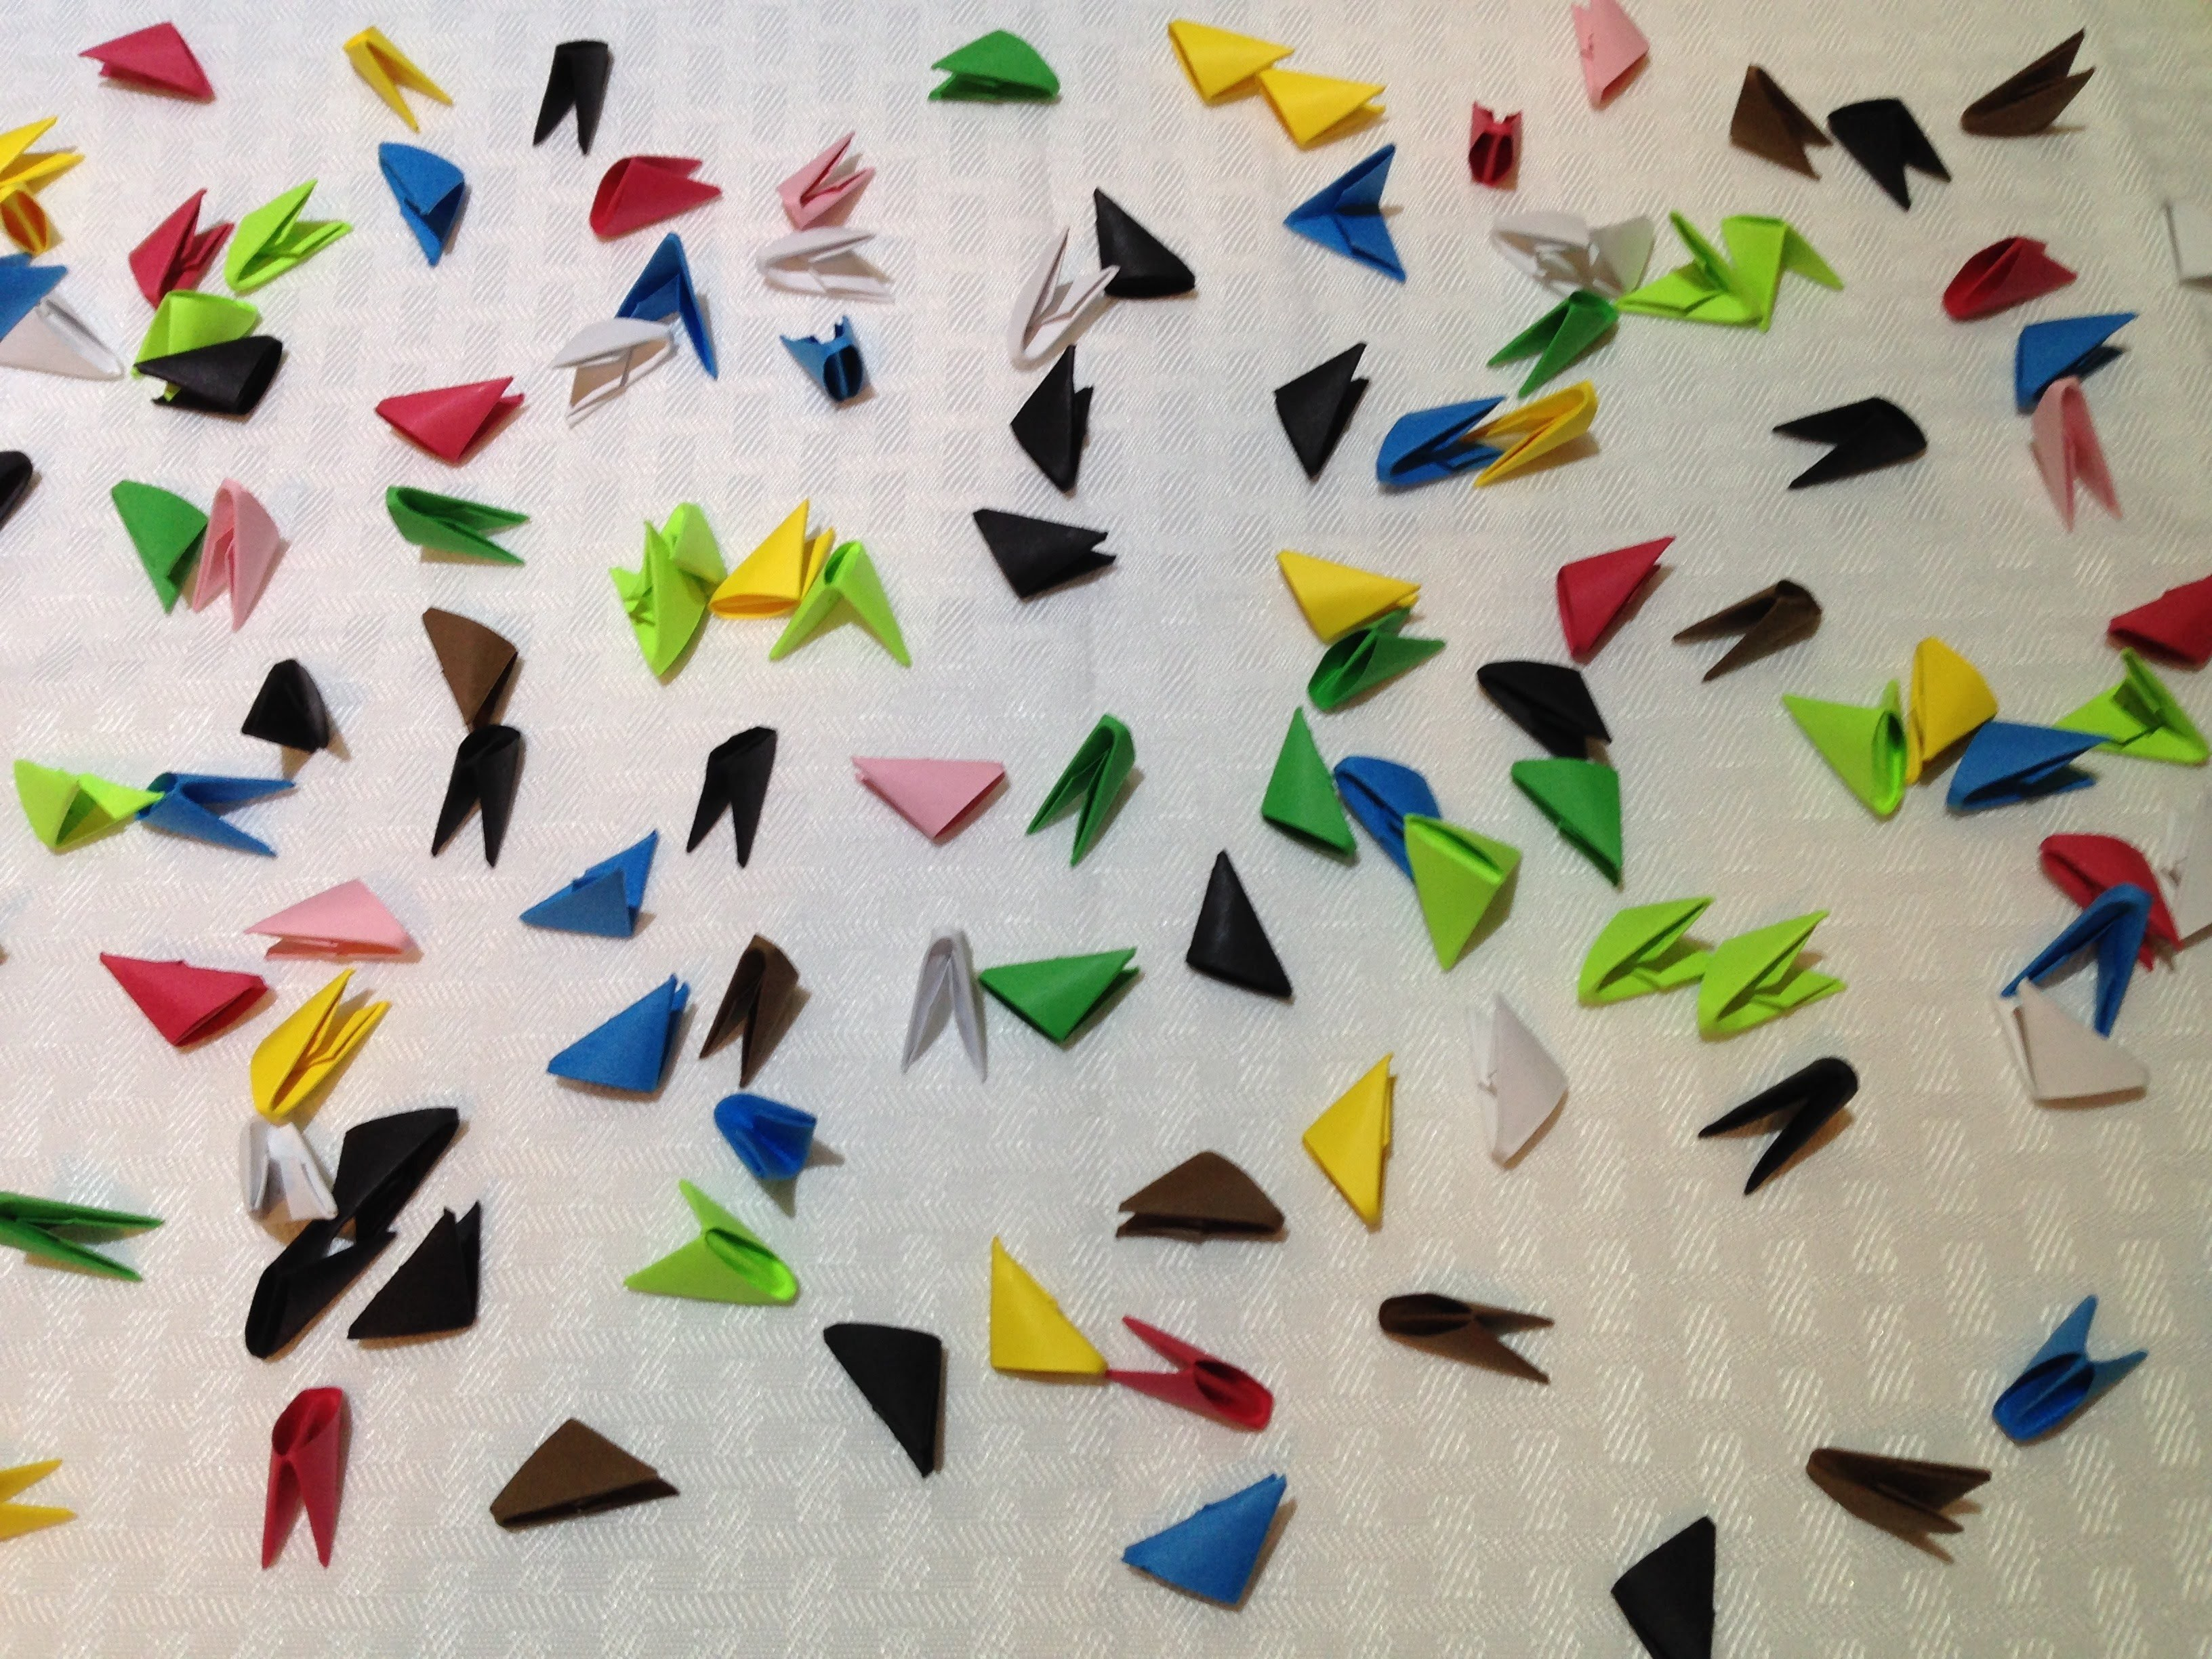 How to make 3D Origami triangles